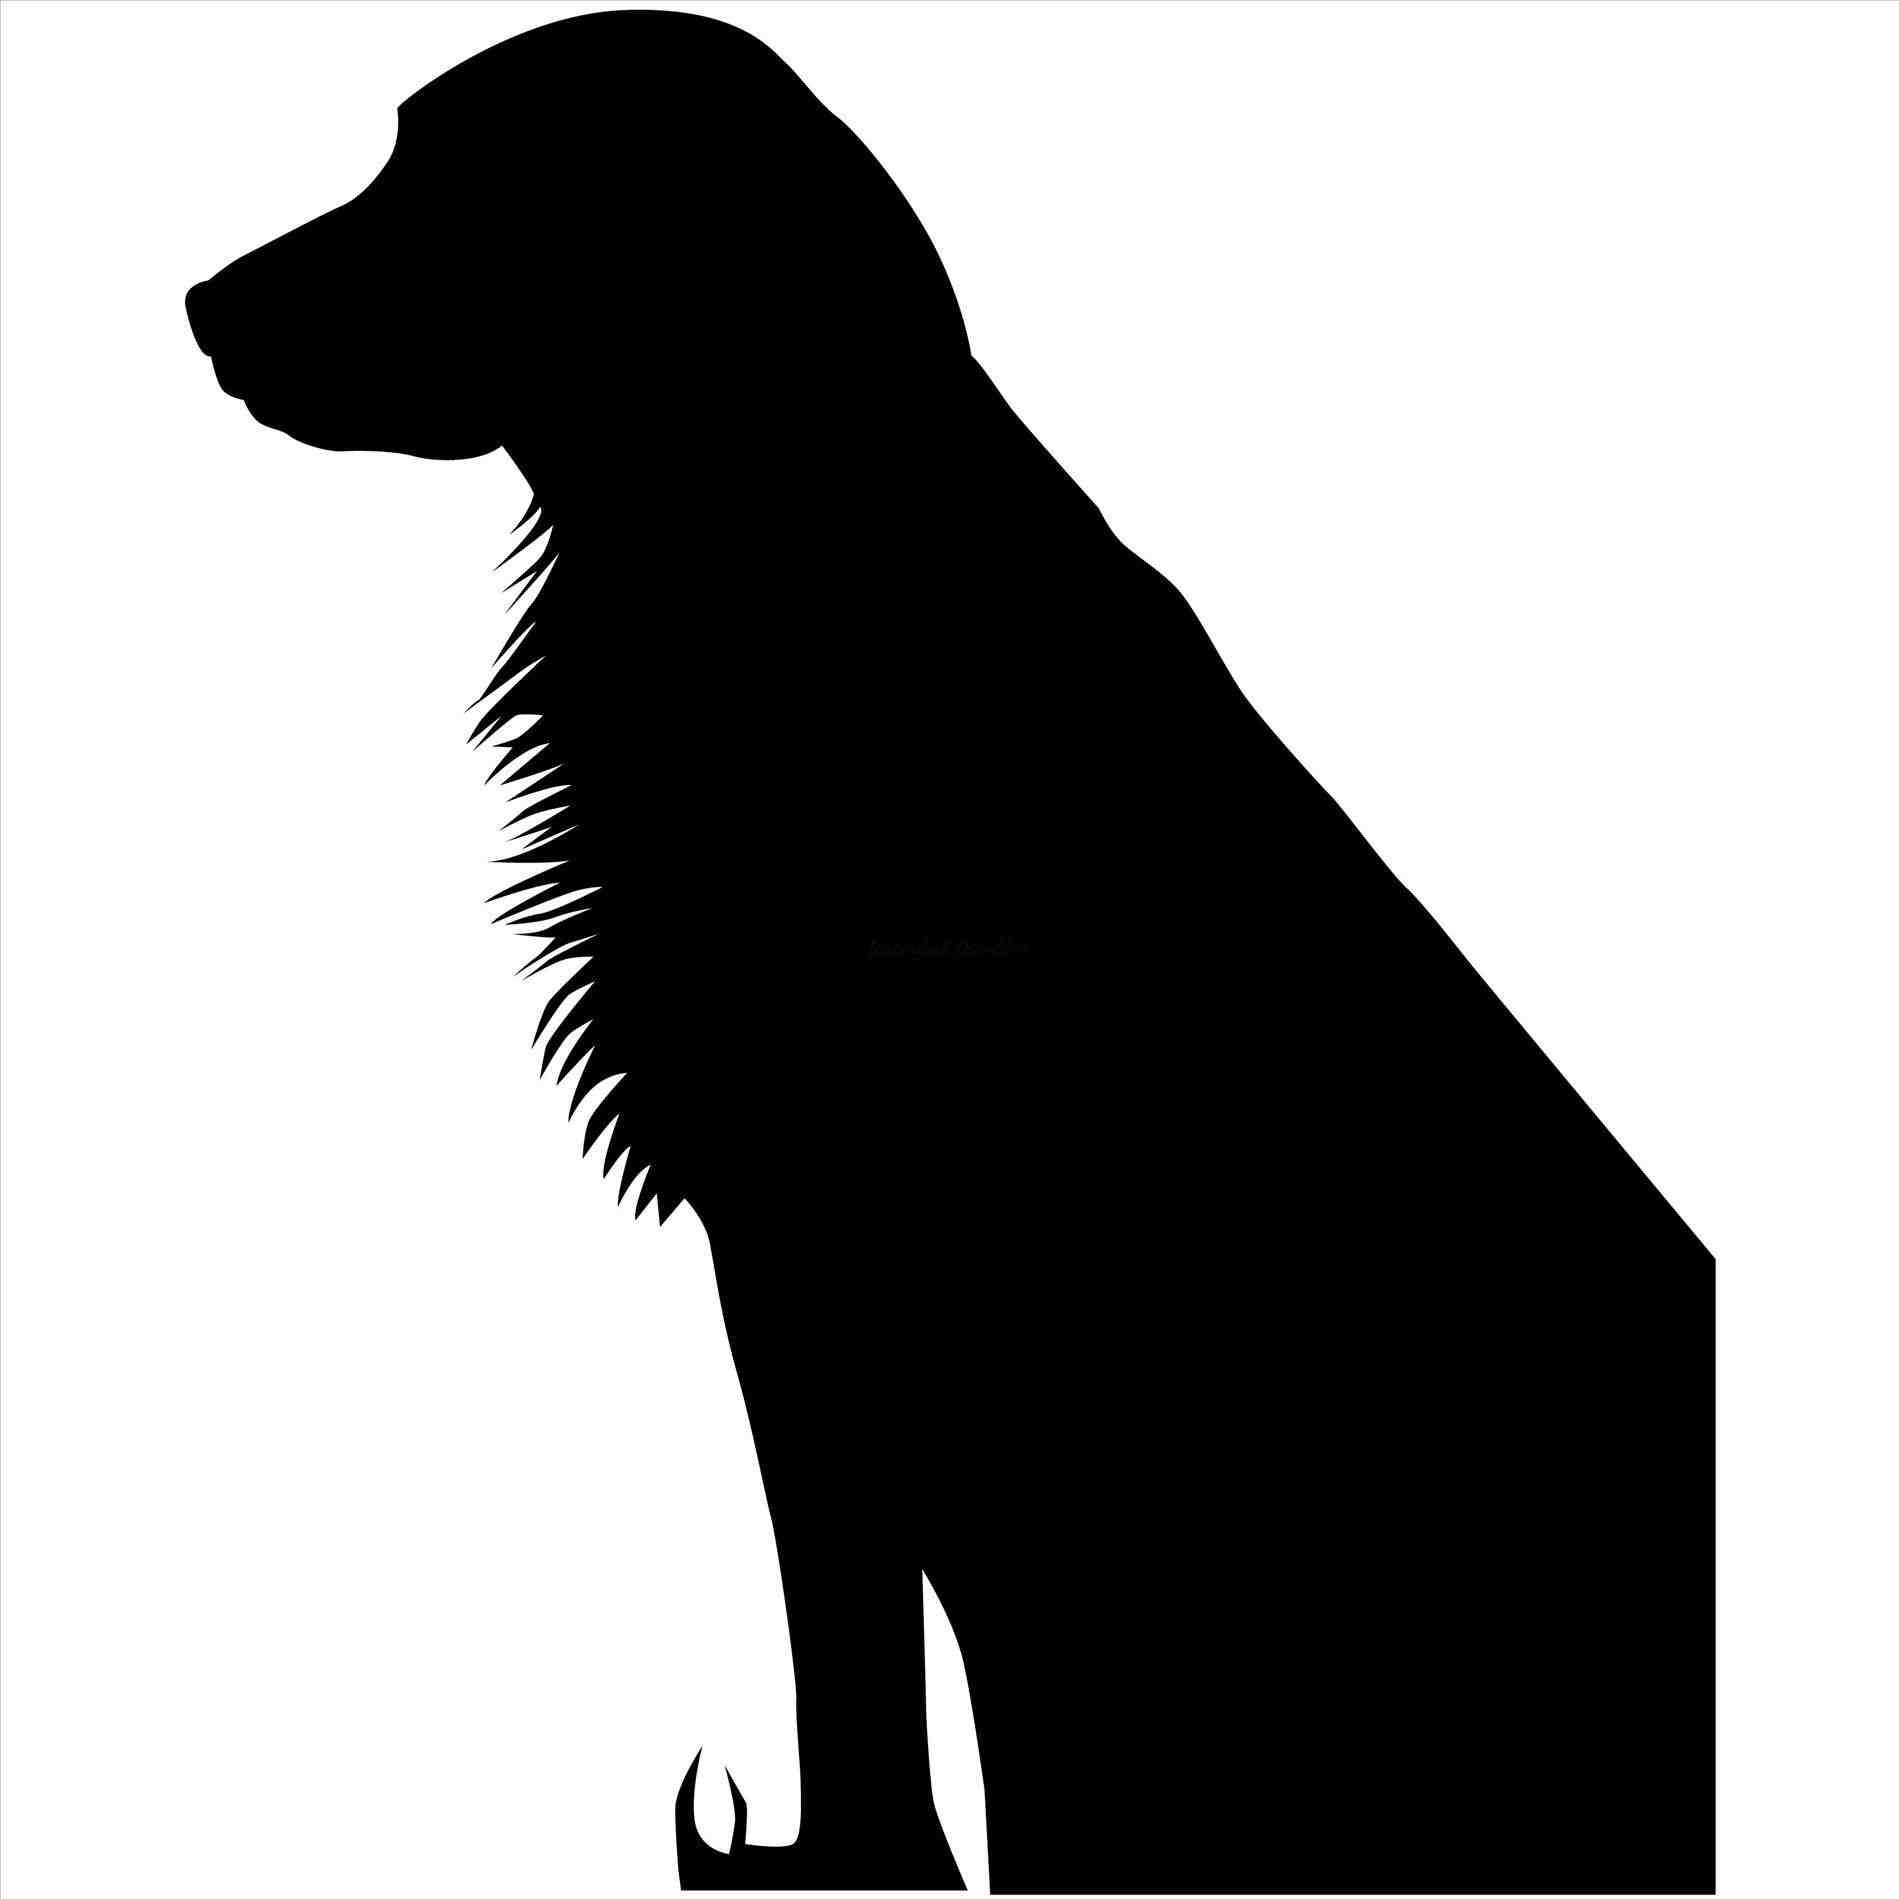 golden retriever sitting silhouette 612 best images about silhouettes on pinterest nativity golden sitting silhouette retriever